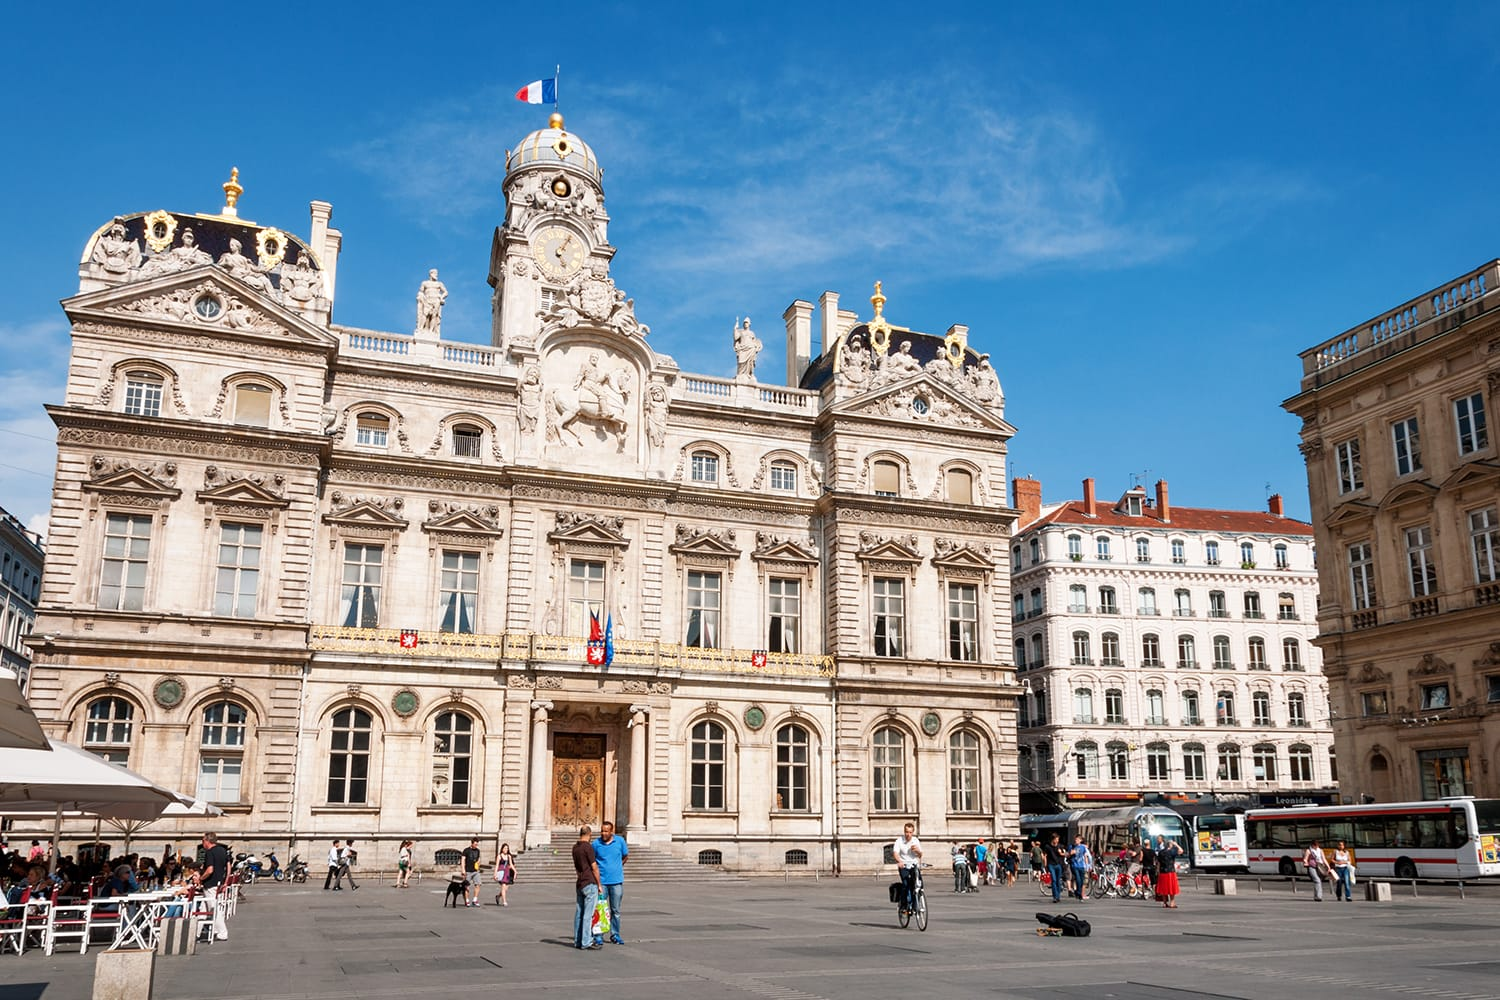 City Hall on Place des Terreaux in Lyon, France